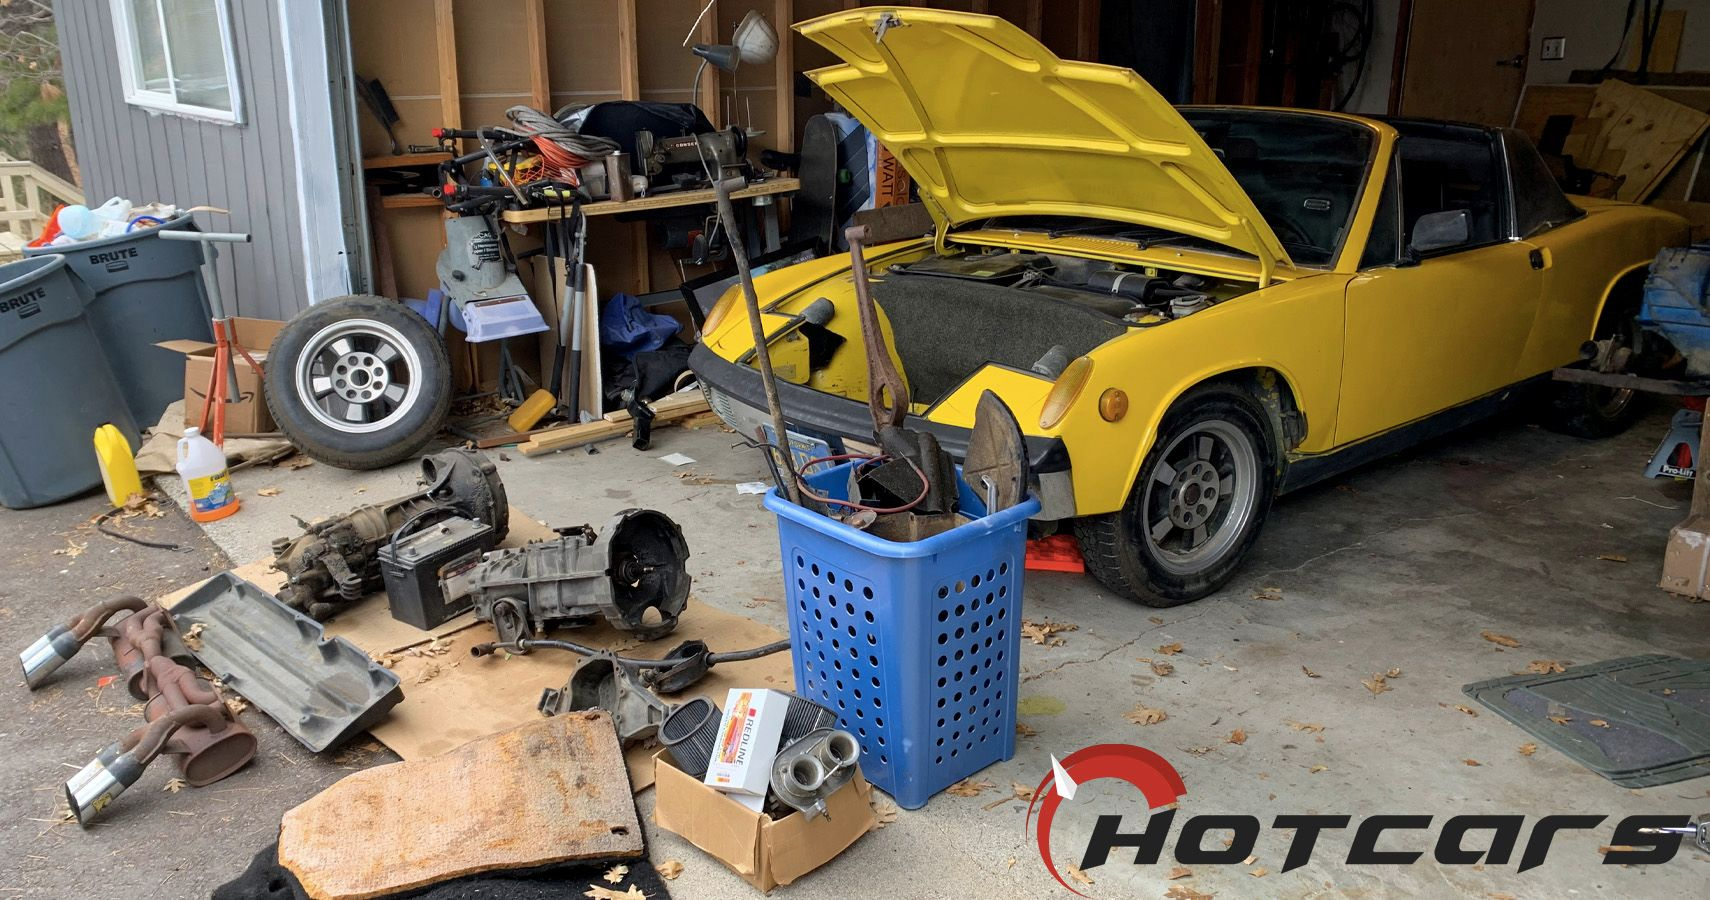 How I Ended Up Buying A 1971 Porsche 914 And A Pile Of Parts